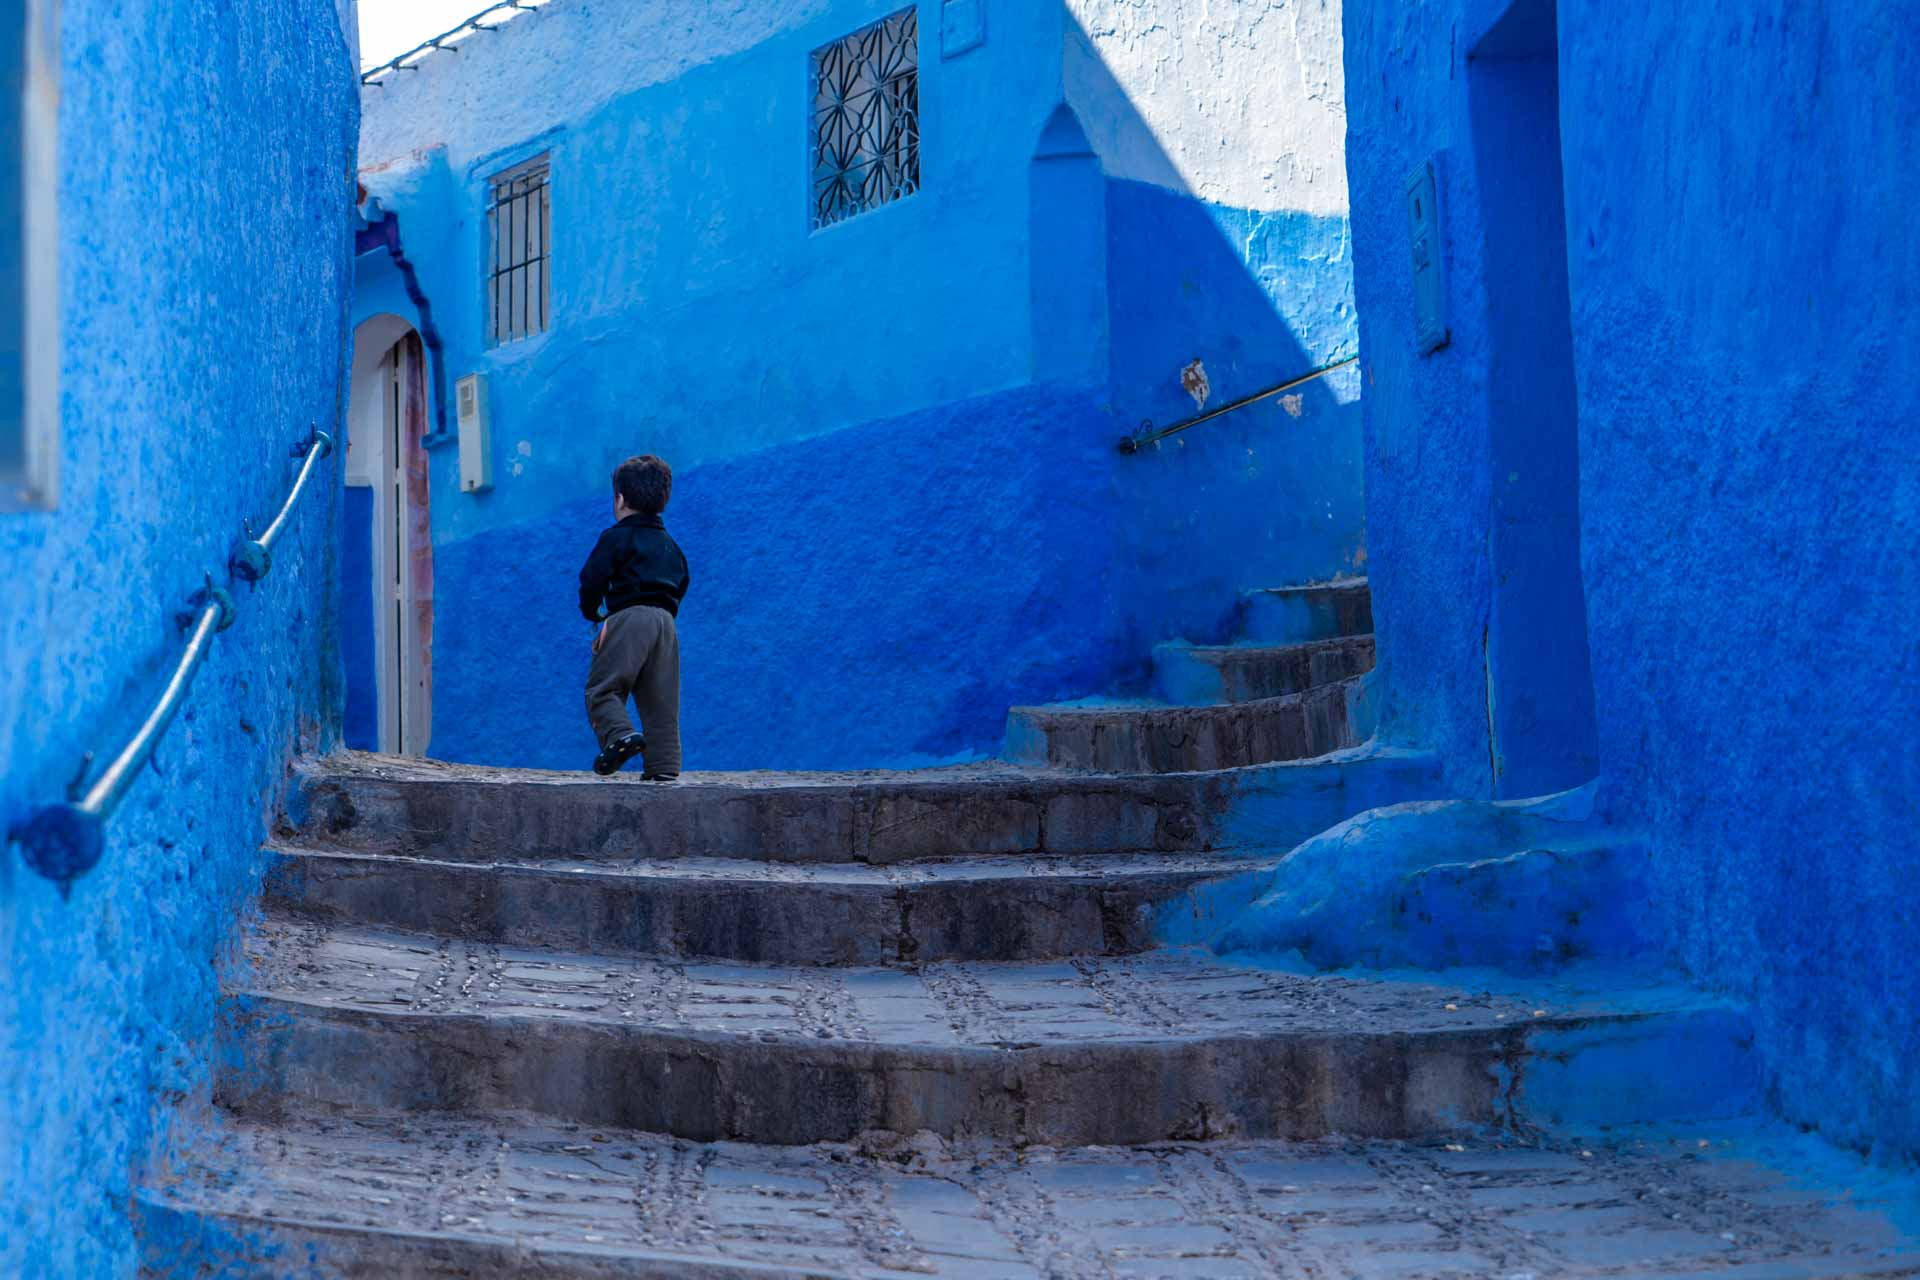 Morocco Chefchaouen - Running from Steve McCurry, morocco, chefchaouen, , pescart, photo blog, travel blog, blog, photo travel blog, enrico pescantini, pescantini